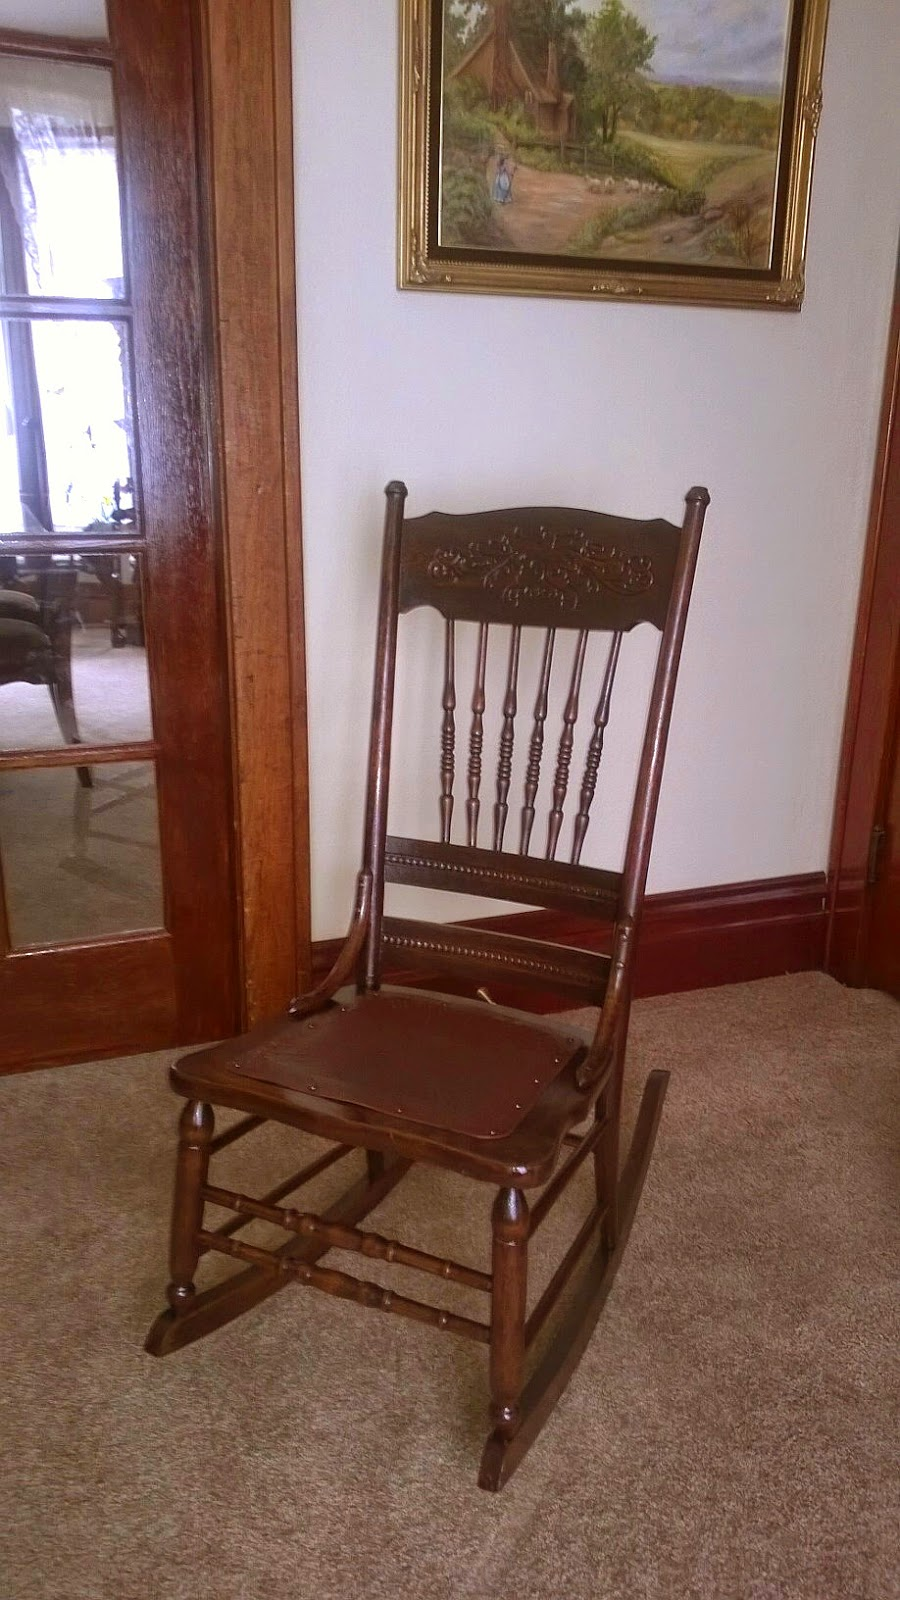 Antique sewing rocking chair - Here The Chair Got Tested By A Couple Of Grandtots Complete With A Story Book And Some Cuddles And Rockabye Baby Songs Yes Even At Ages 2 And 4